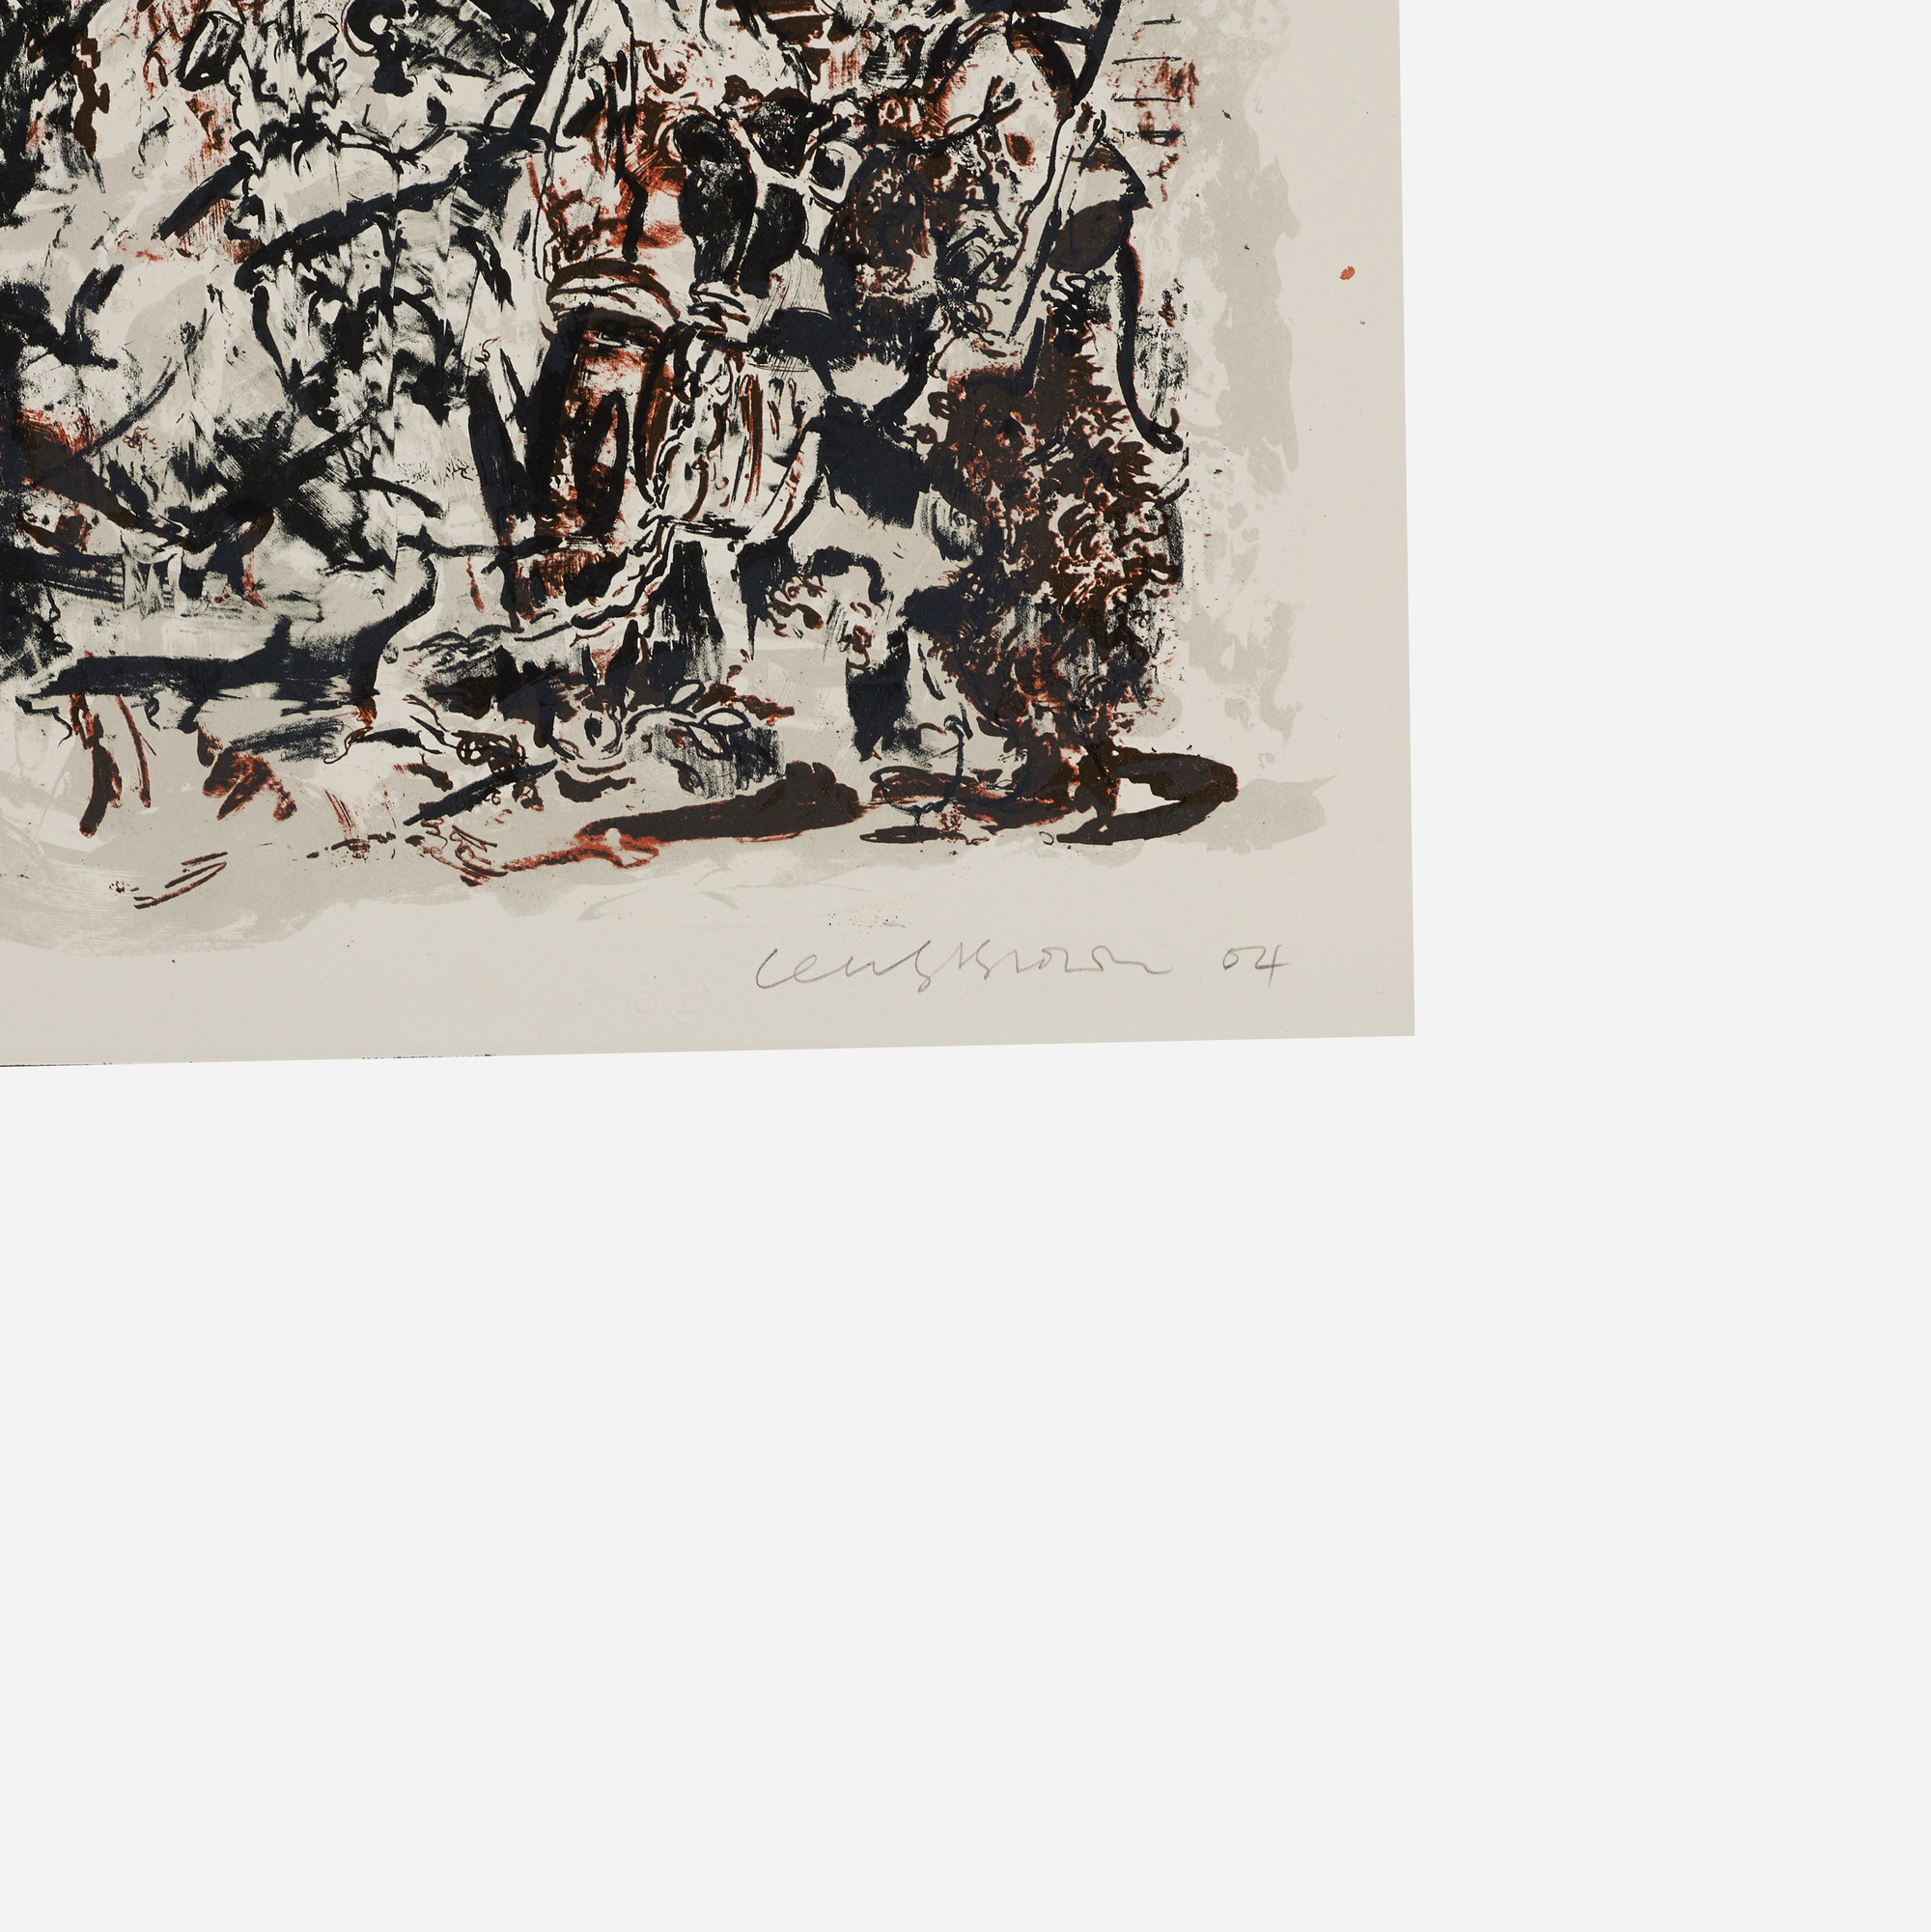 258: Cecily Brown / Study after an Election by William Hogarth (2 of 2)